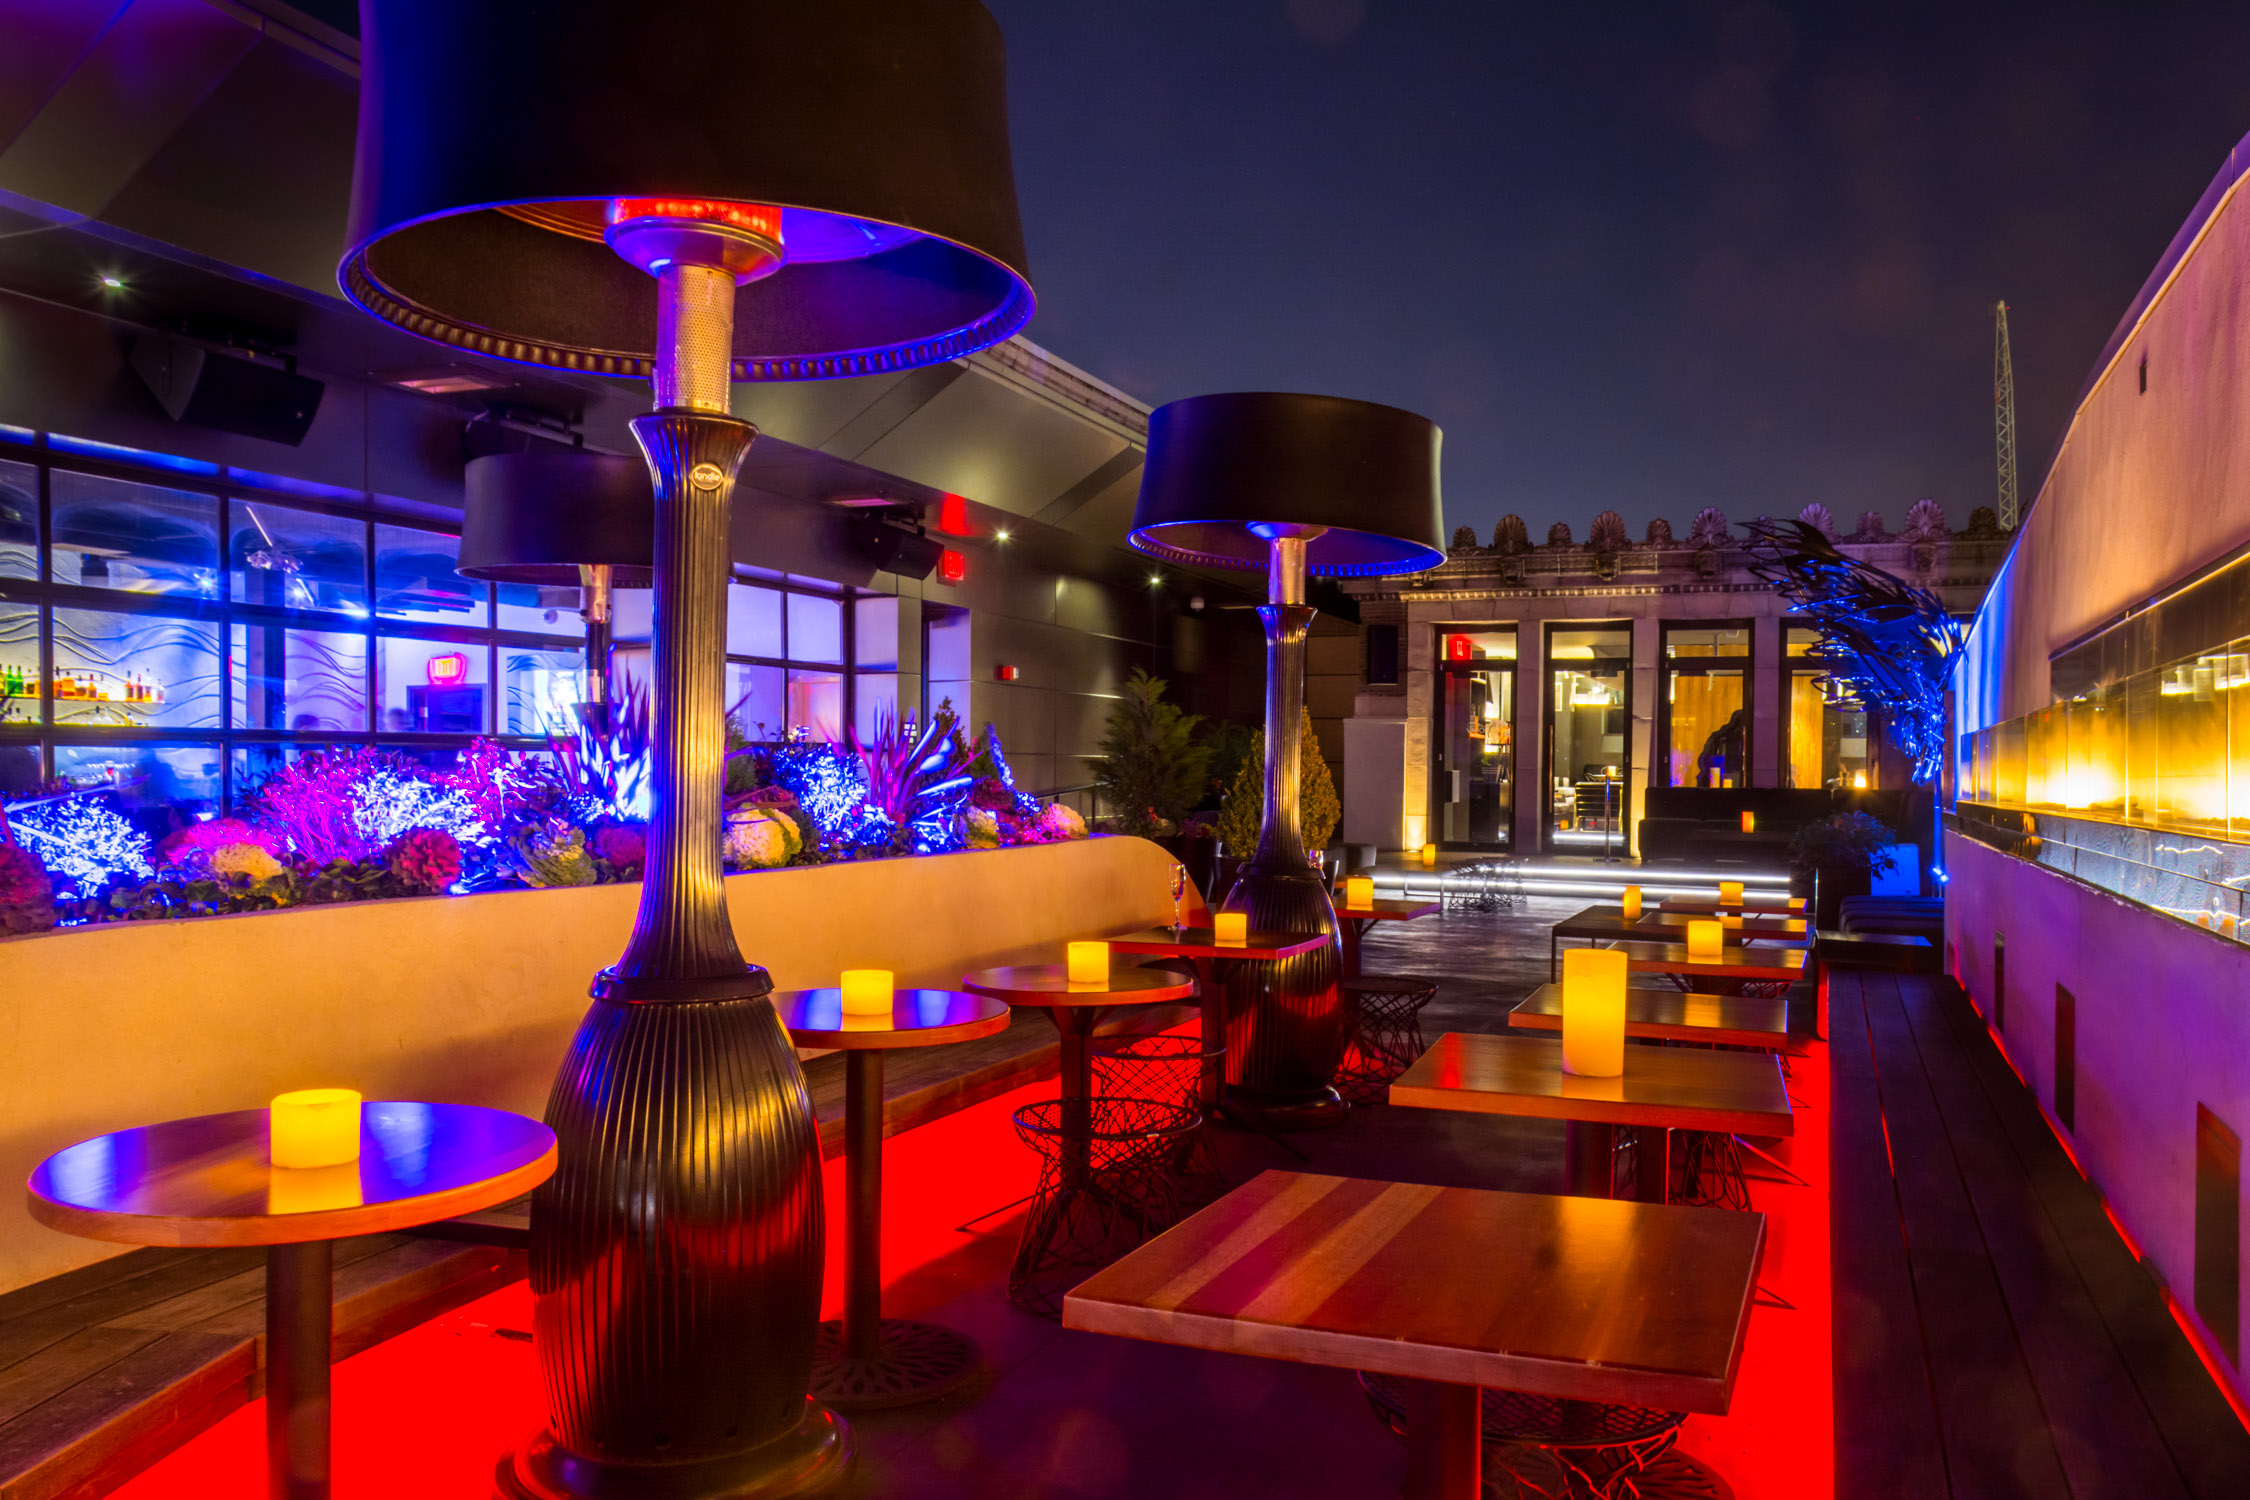 At the Stratus Bar - Hotel Monaco's rooftop lounge